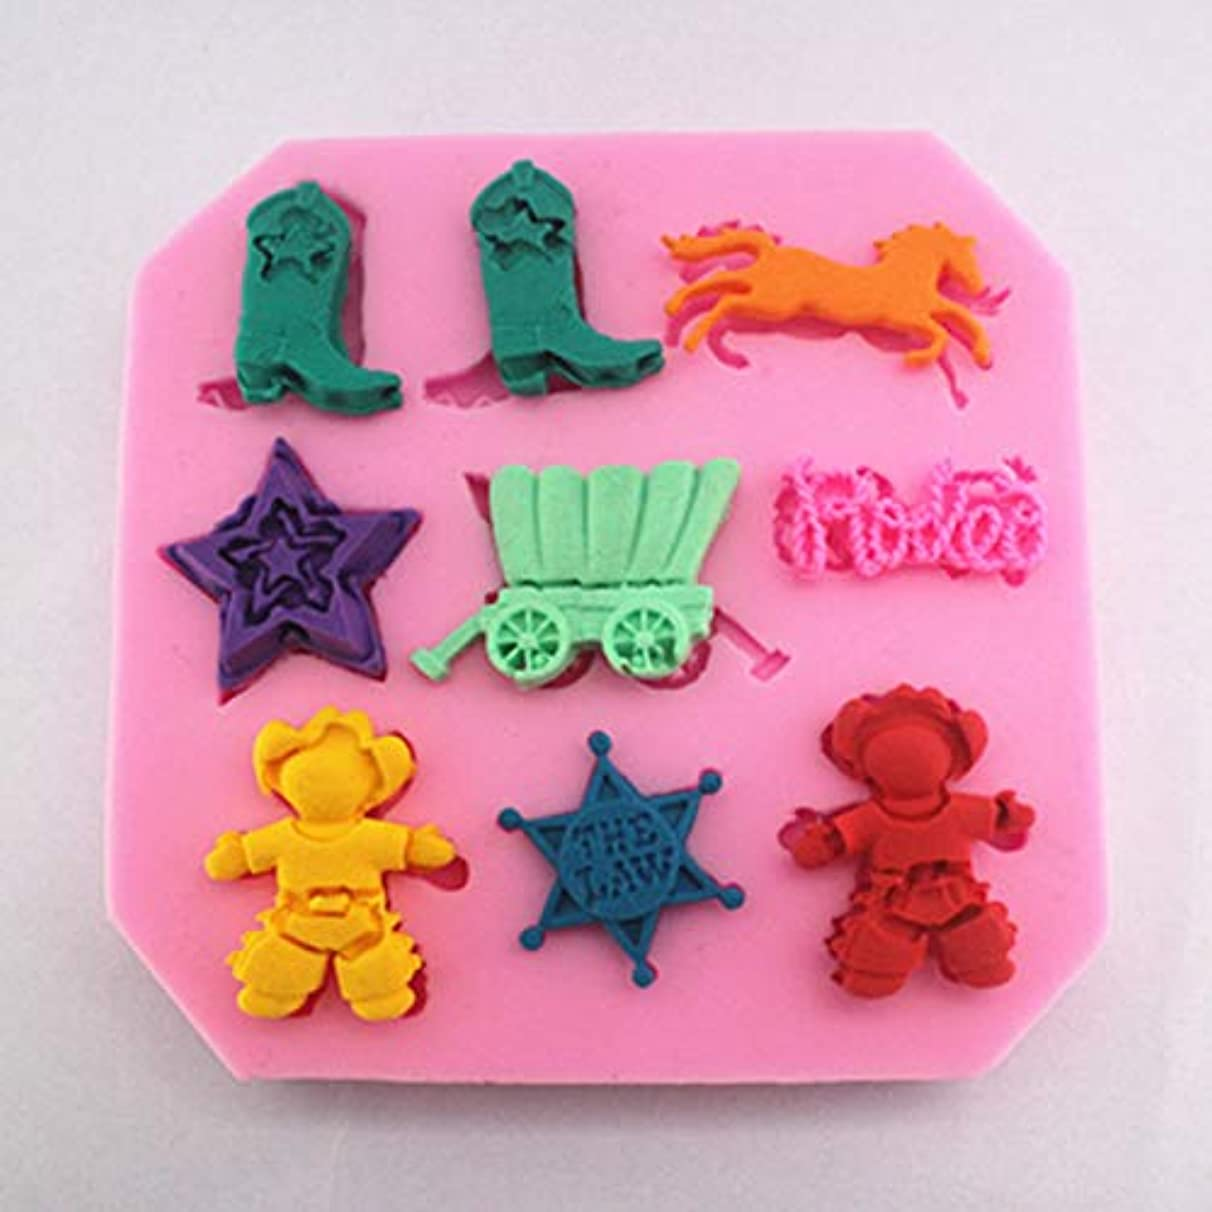 Cake Molds - The Wild West Cowboy Theme Candy Mold Include Boot Horse Cow Boy Sherriff Badge - Music Monkey Hand Farm Lollipop Teeth Travel Baby Candy Marijuana Heart Duck Peanut Magneti